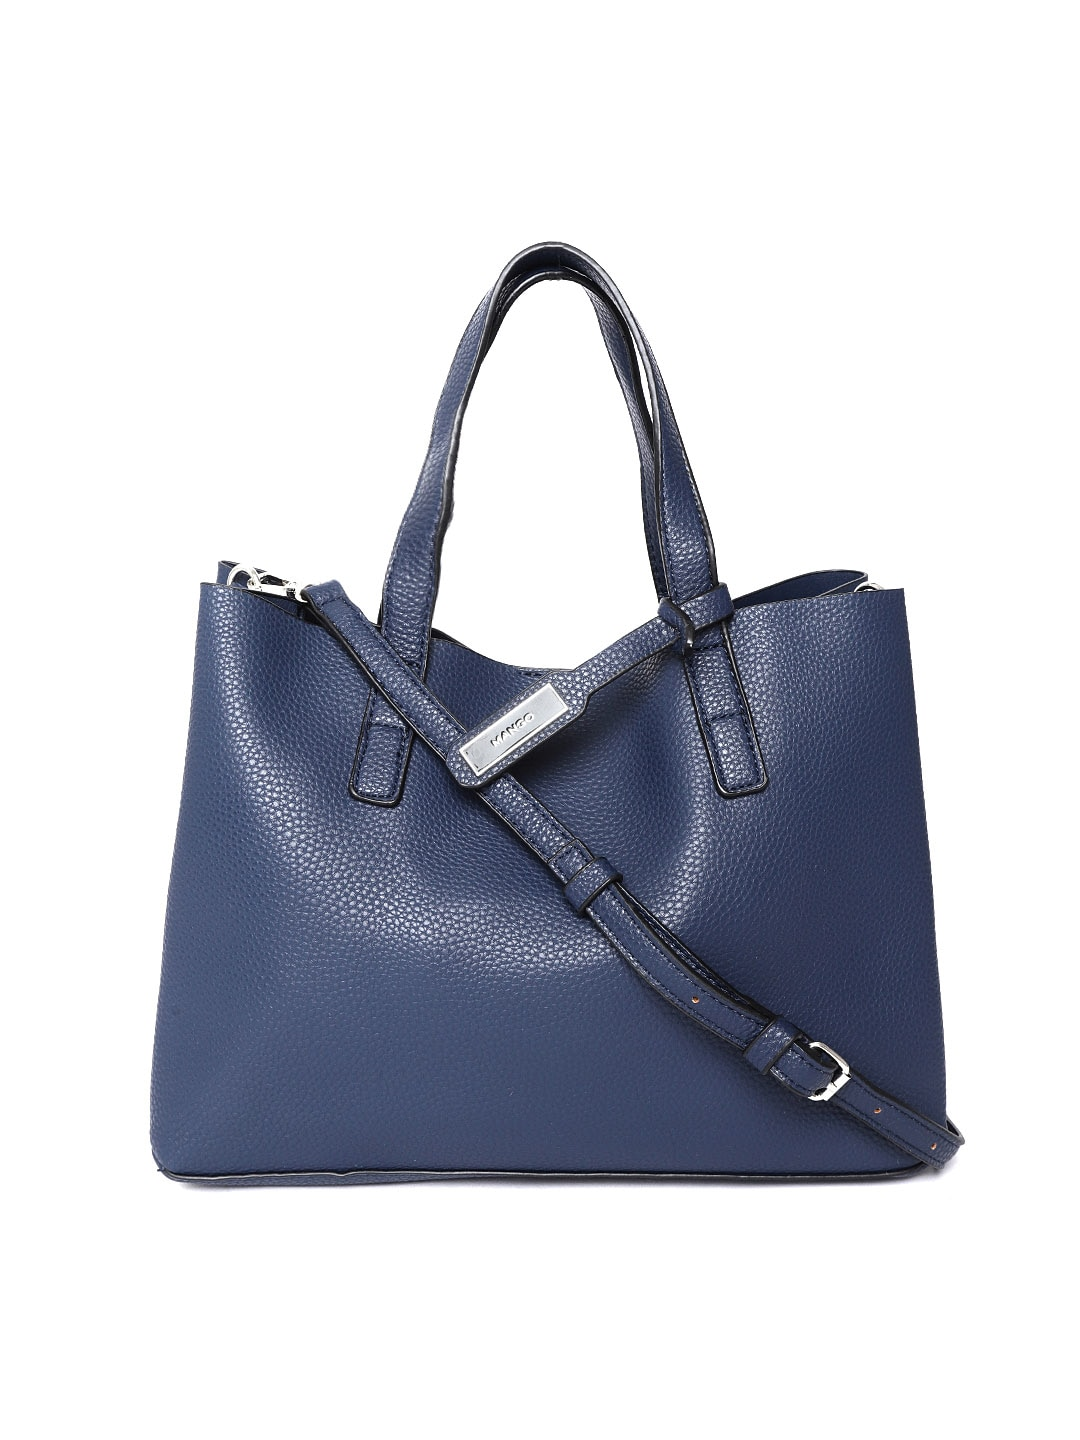 Handbags for Women - Buy Leather Handbags 7f12e8a6b